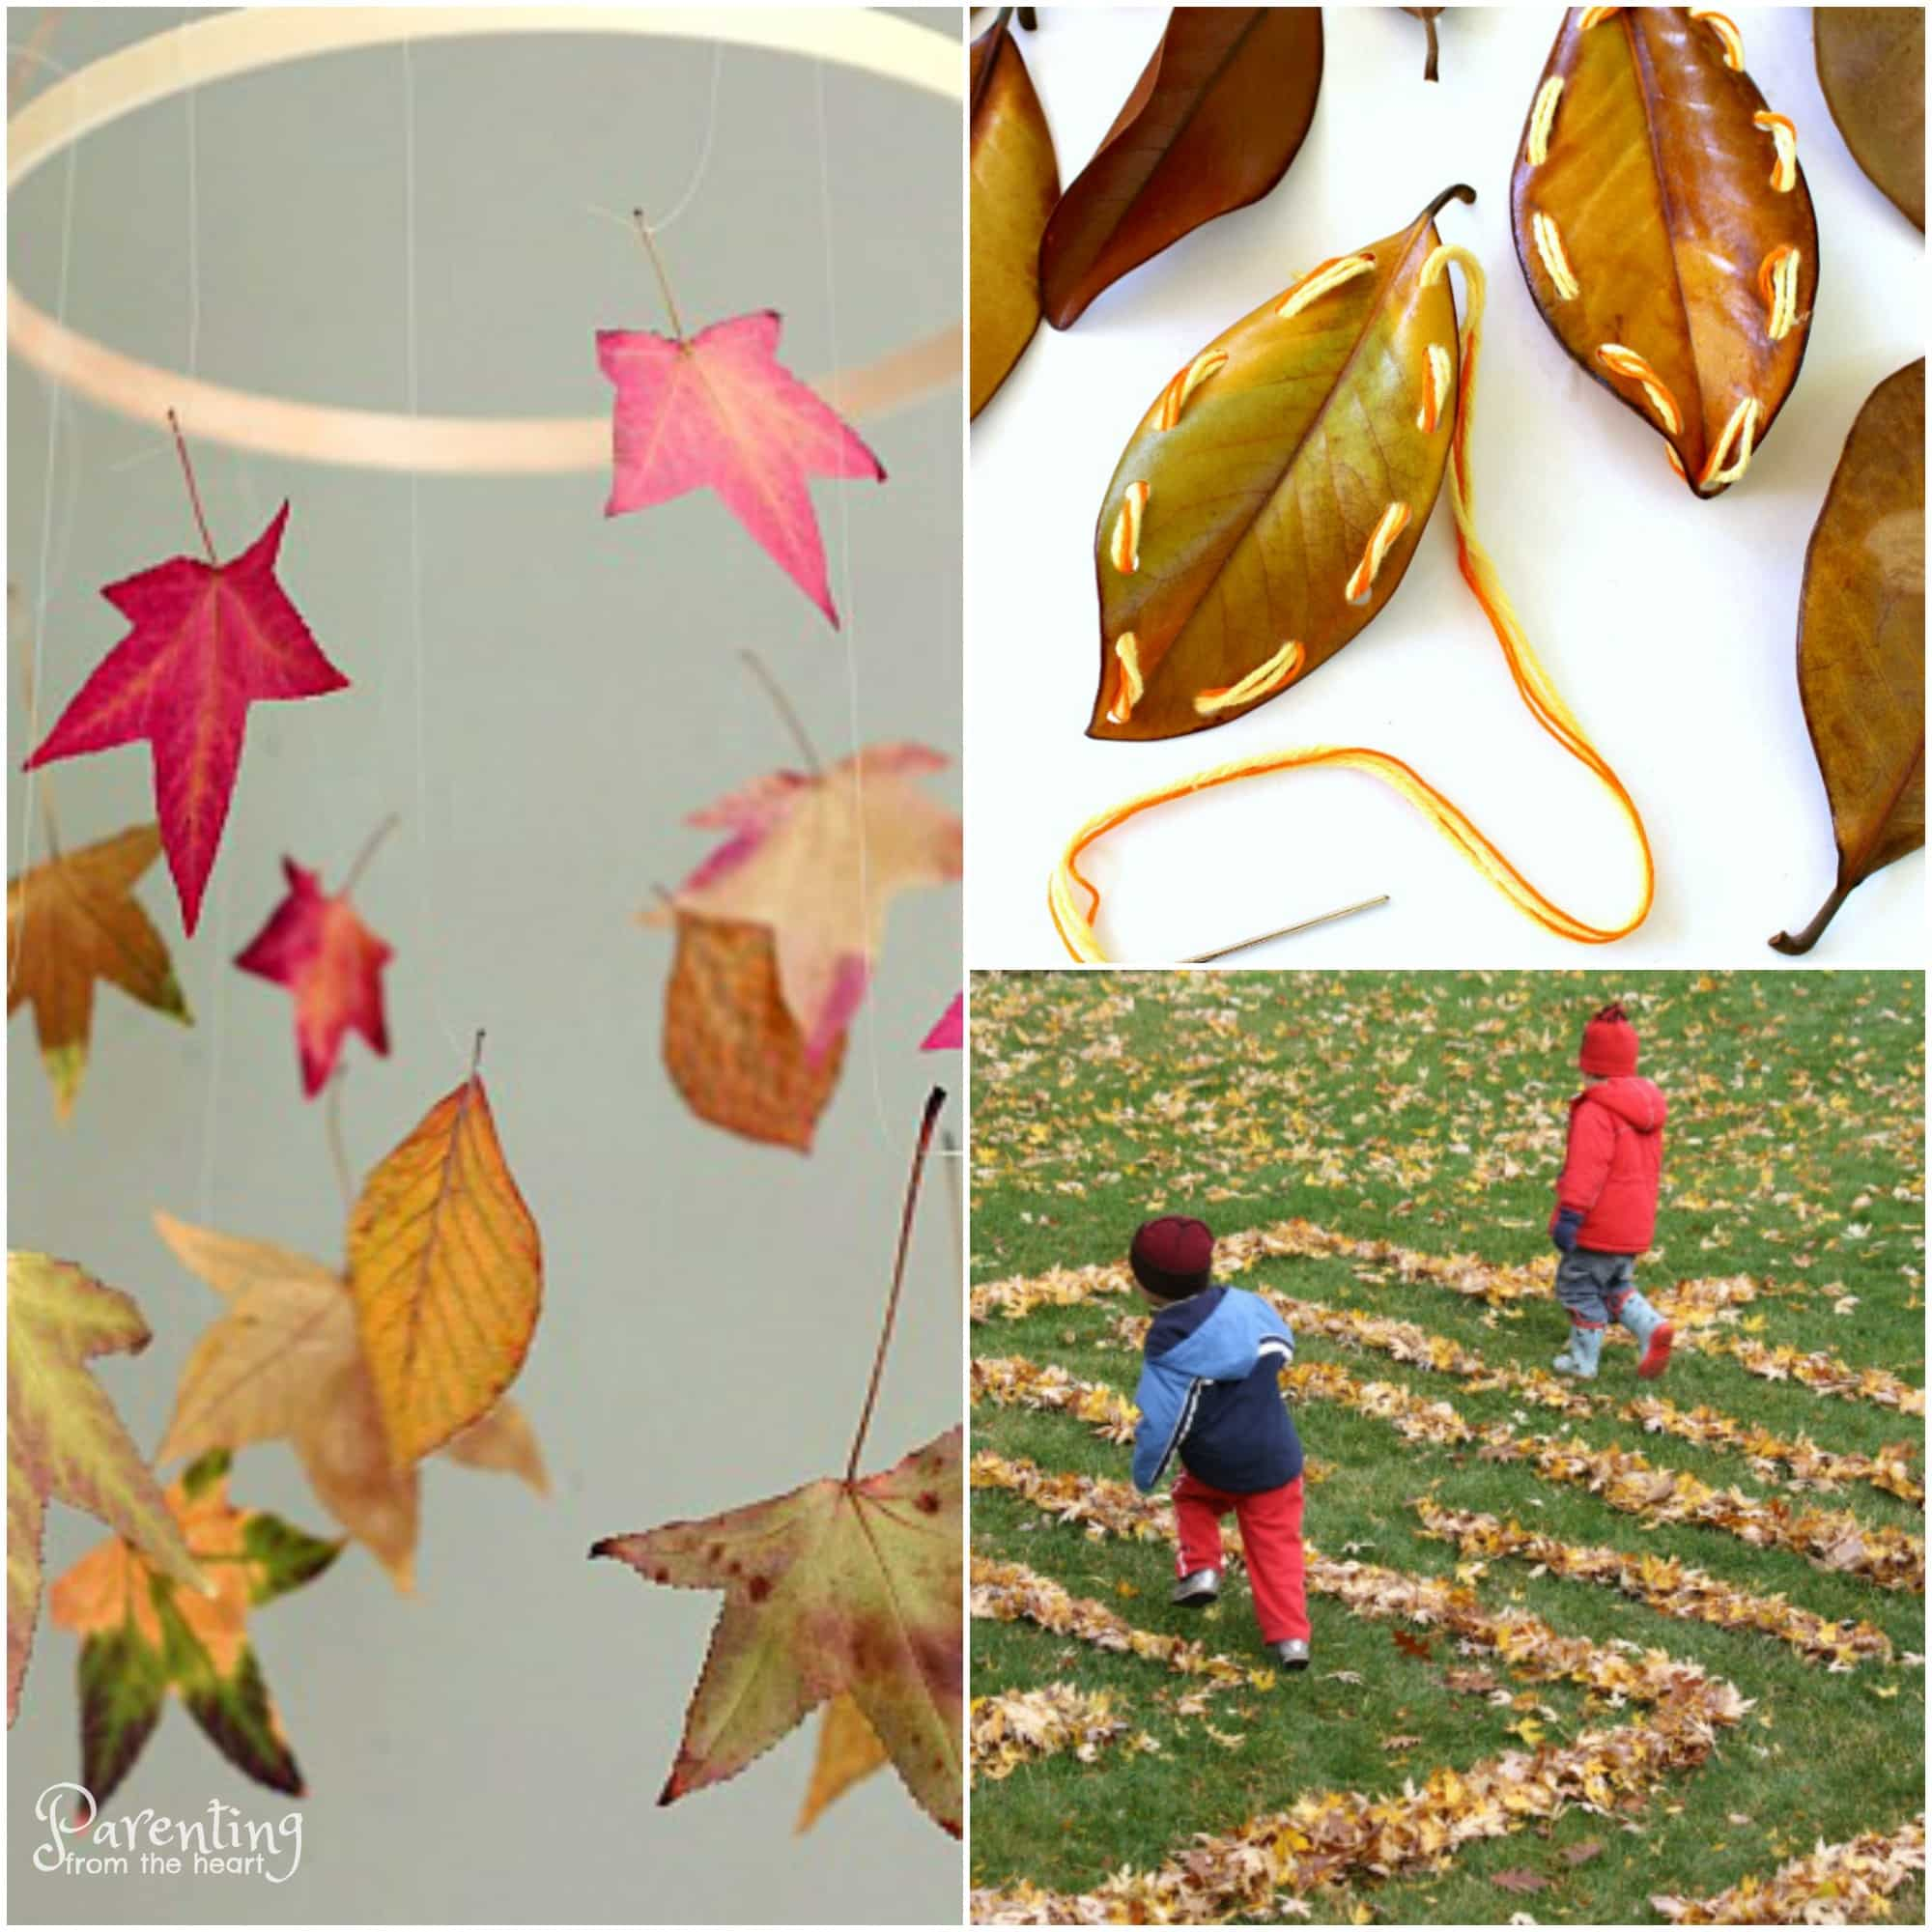 Gorgeous Fall Crafts for kids using leaves